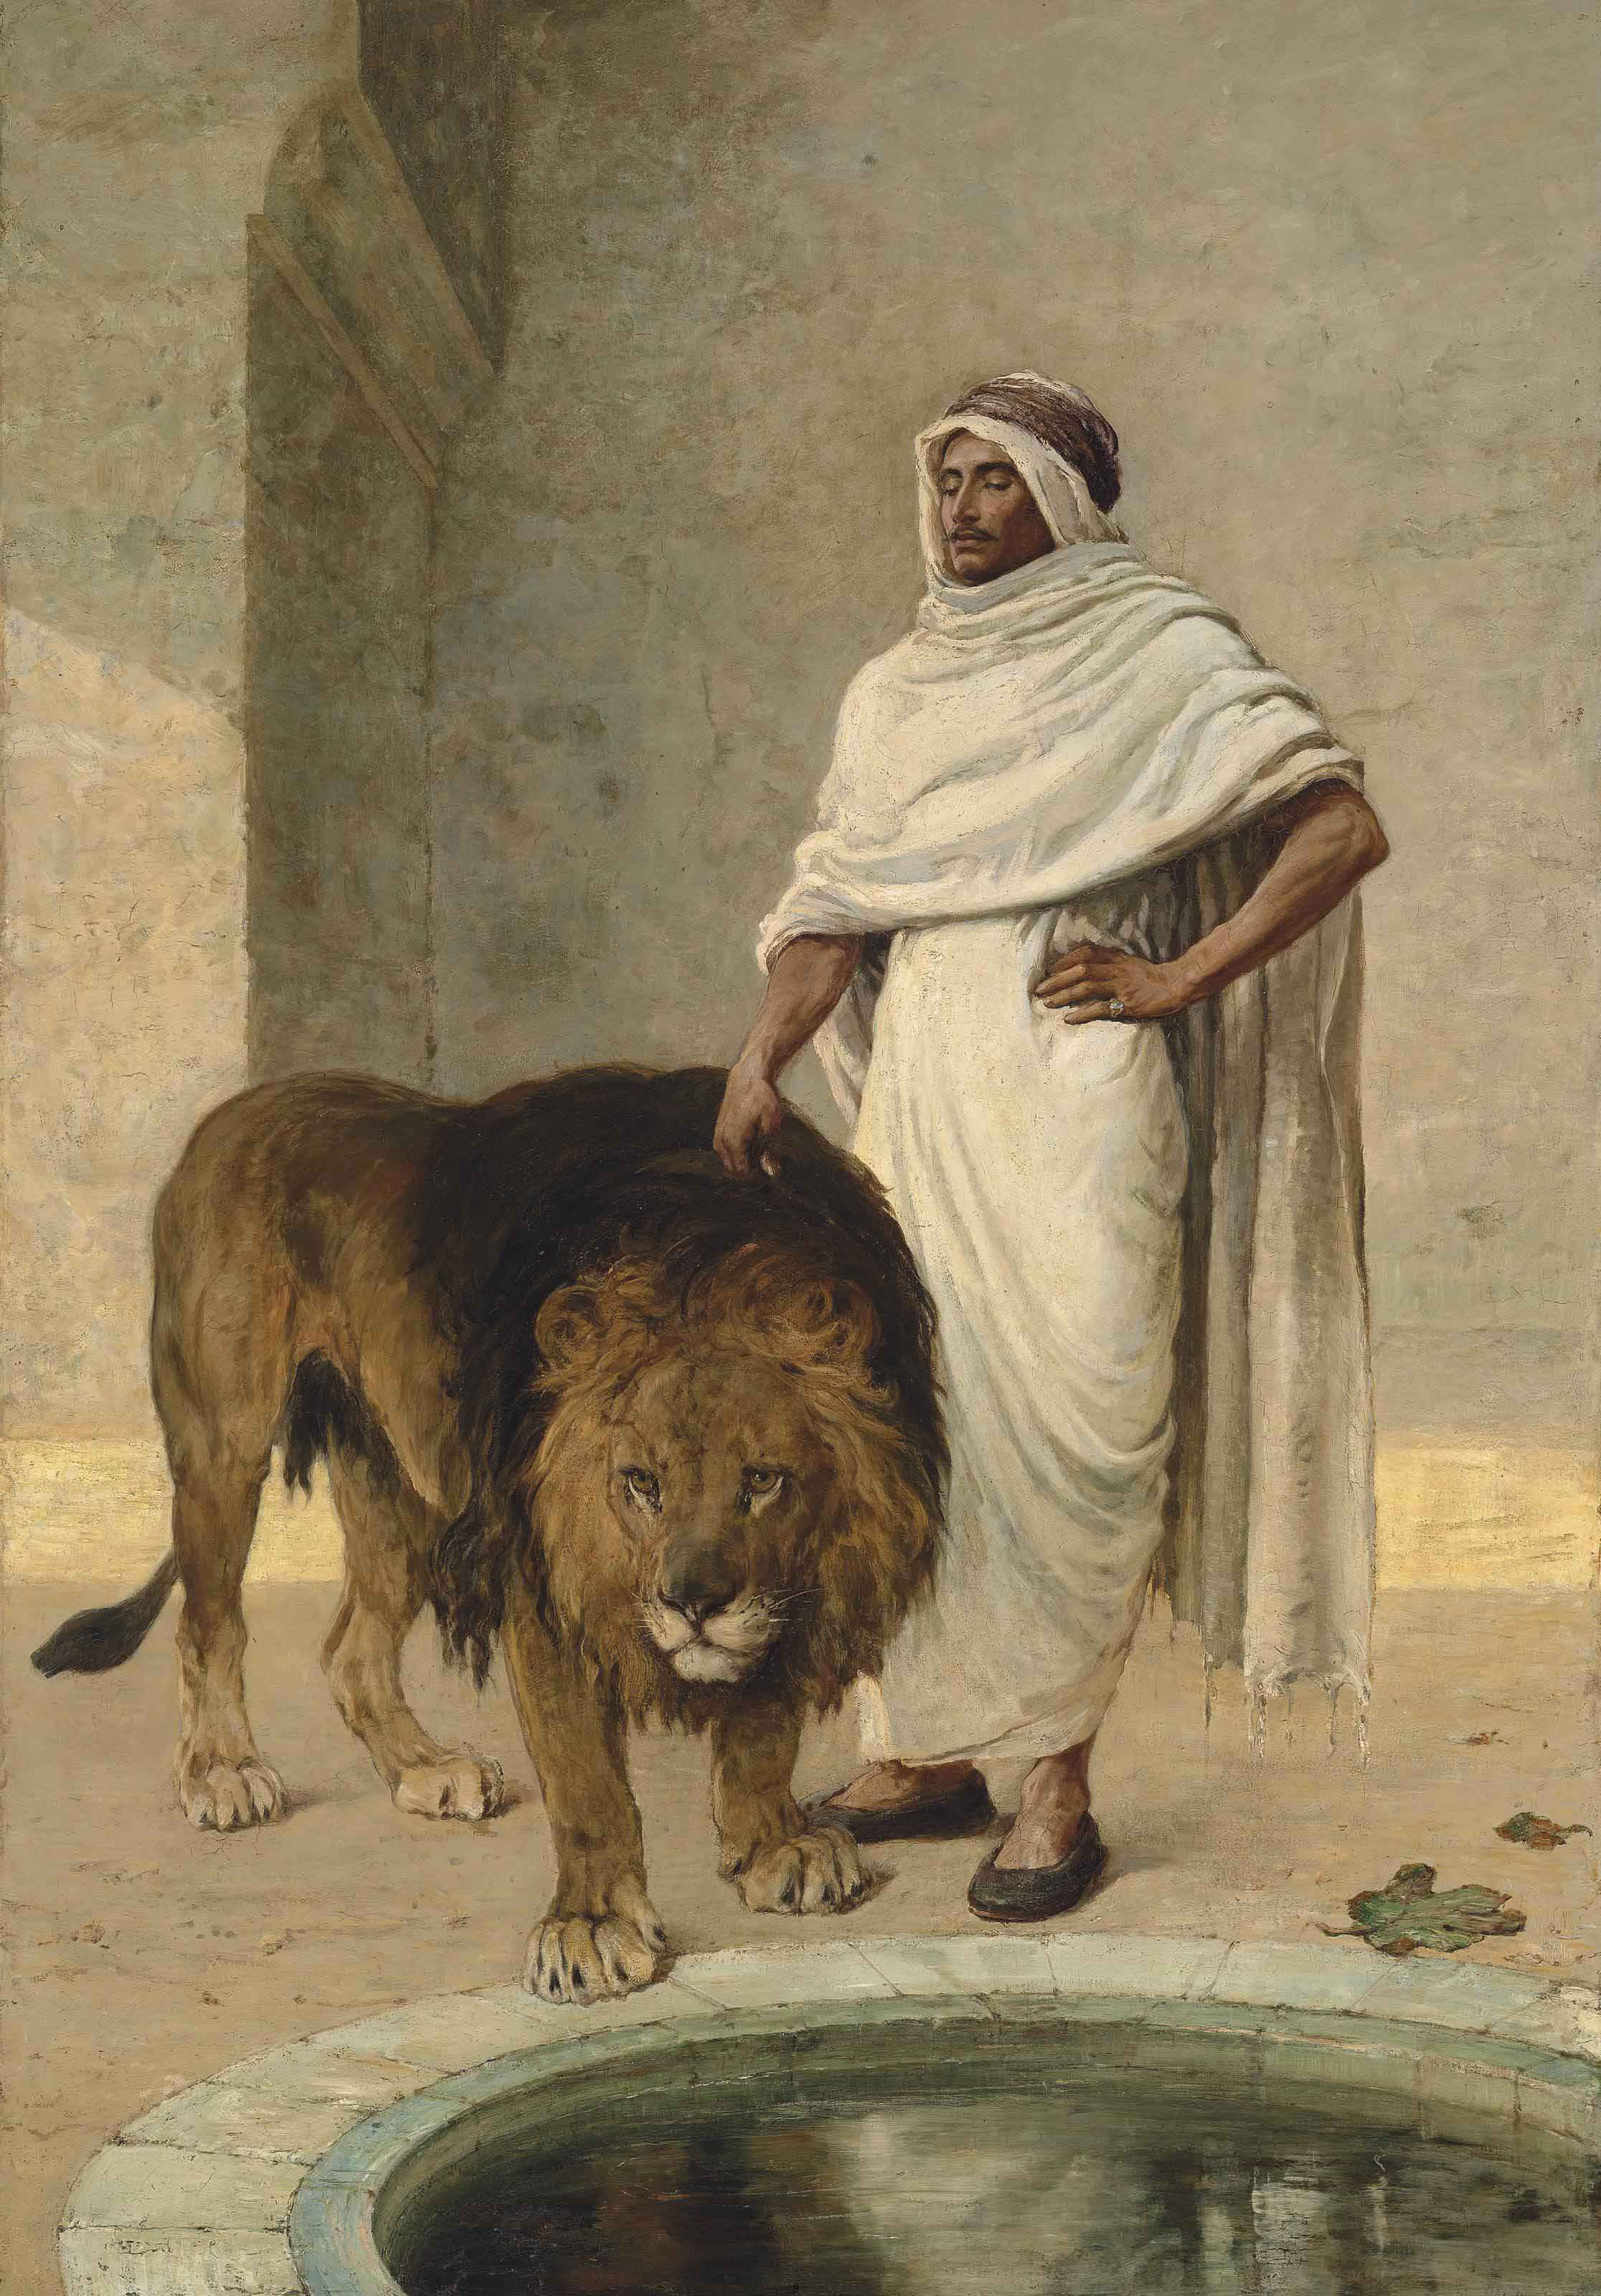 Ahmed ben Avuda and the Holy Lion